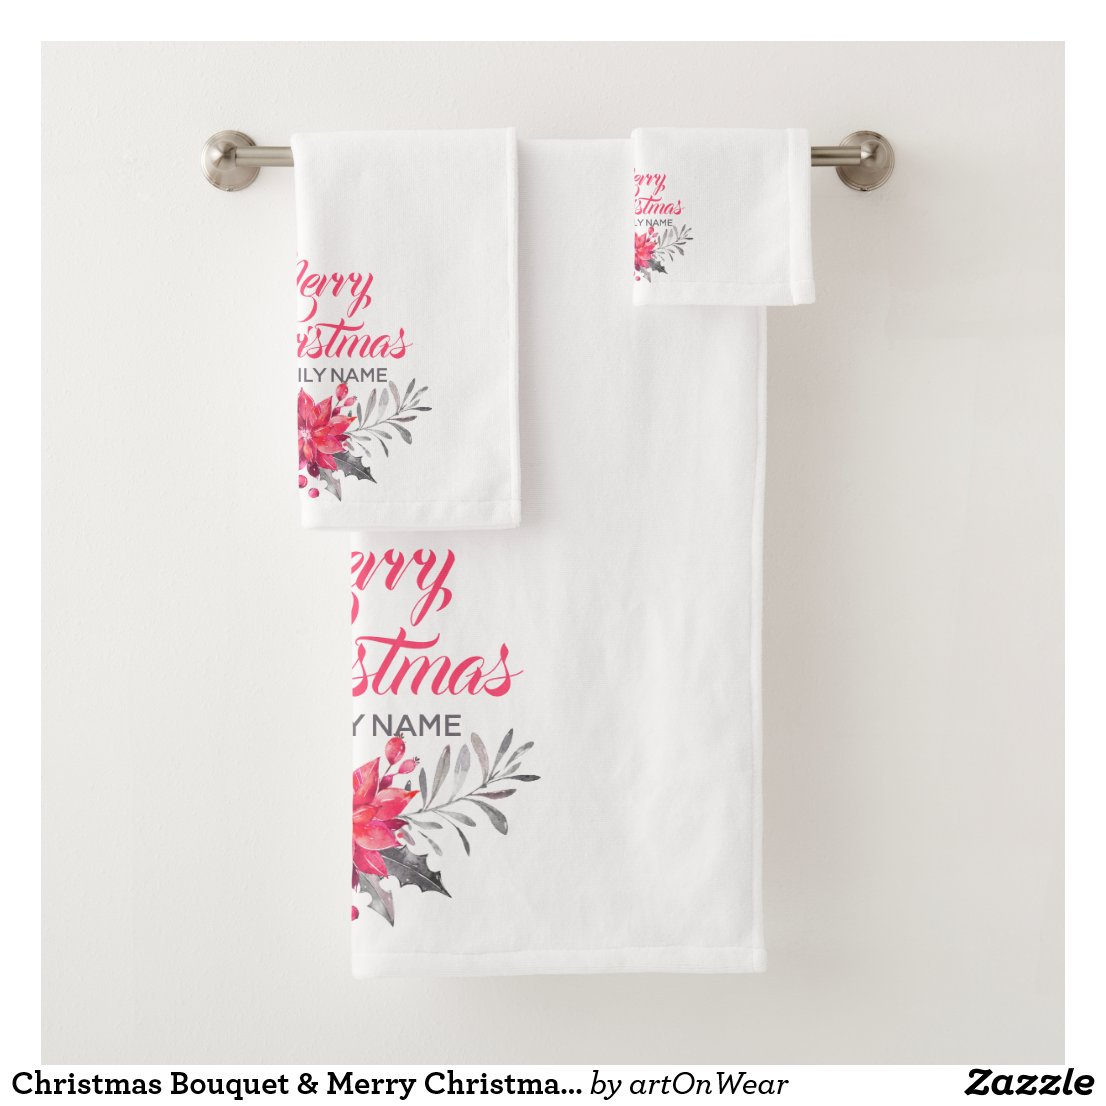 Christmas Bouquet & Merry Christmas Typography